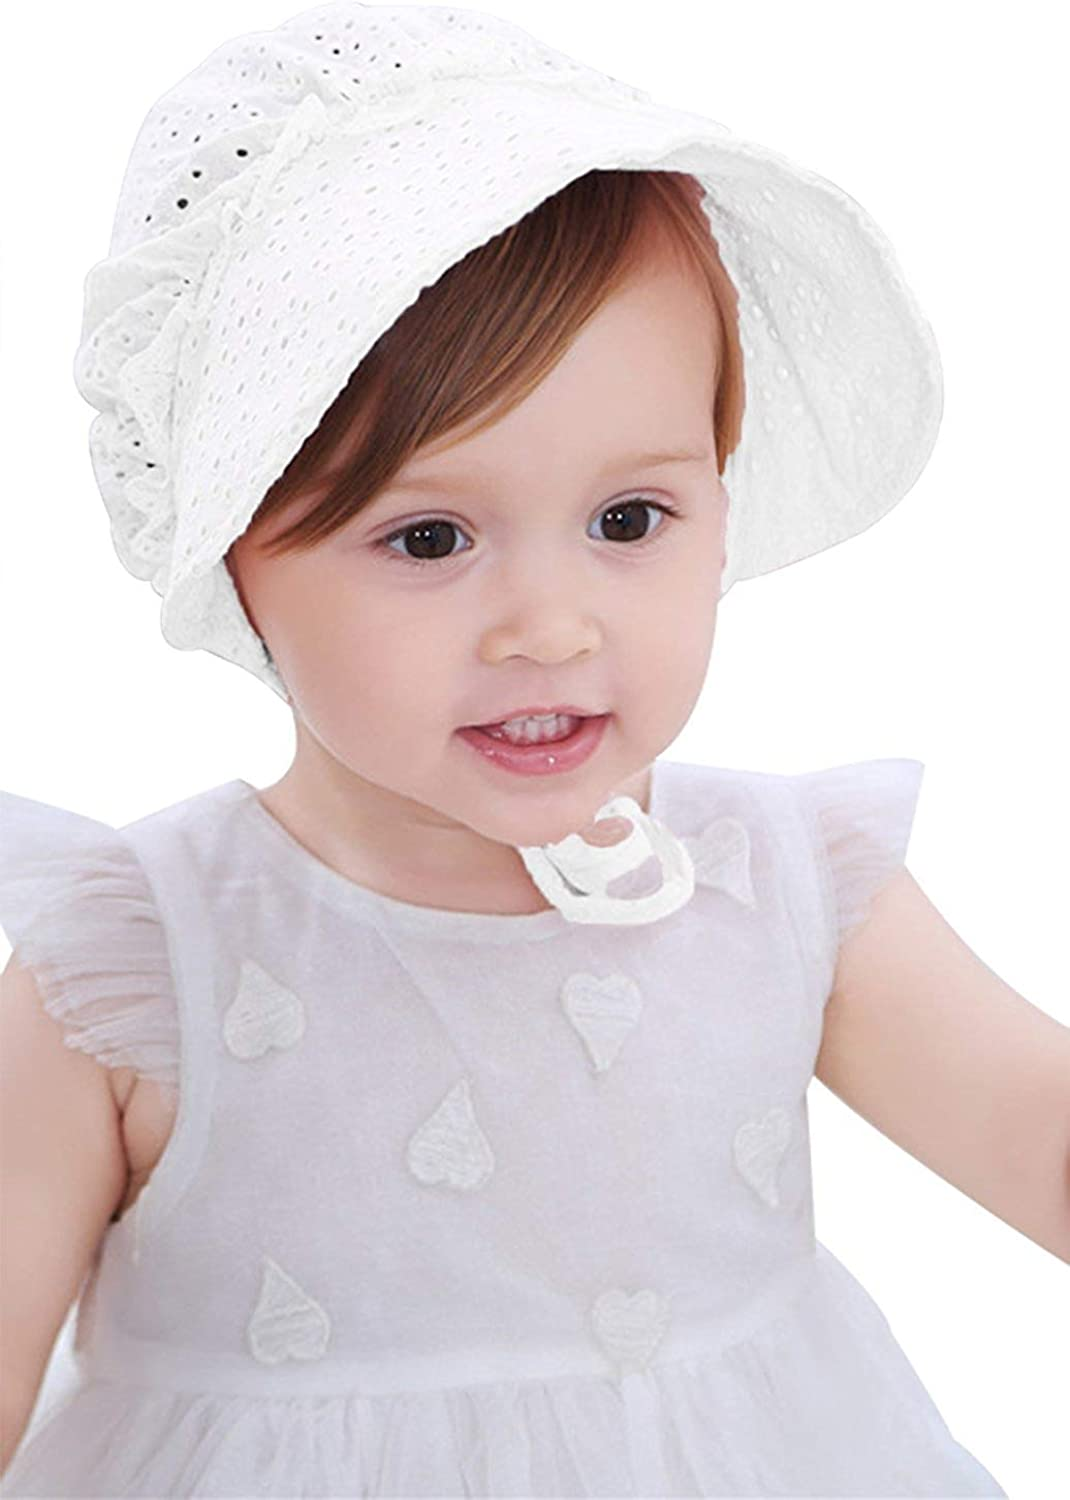 Aniwon Baby Summer Hat Infant Sun Cap Breathable Flower Bowknot Baby Lace Cap Outdoor Hat for Baby